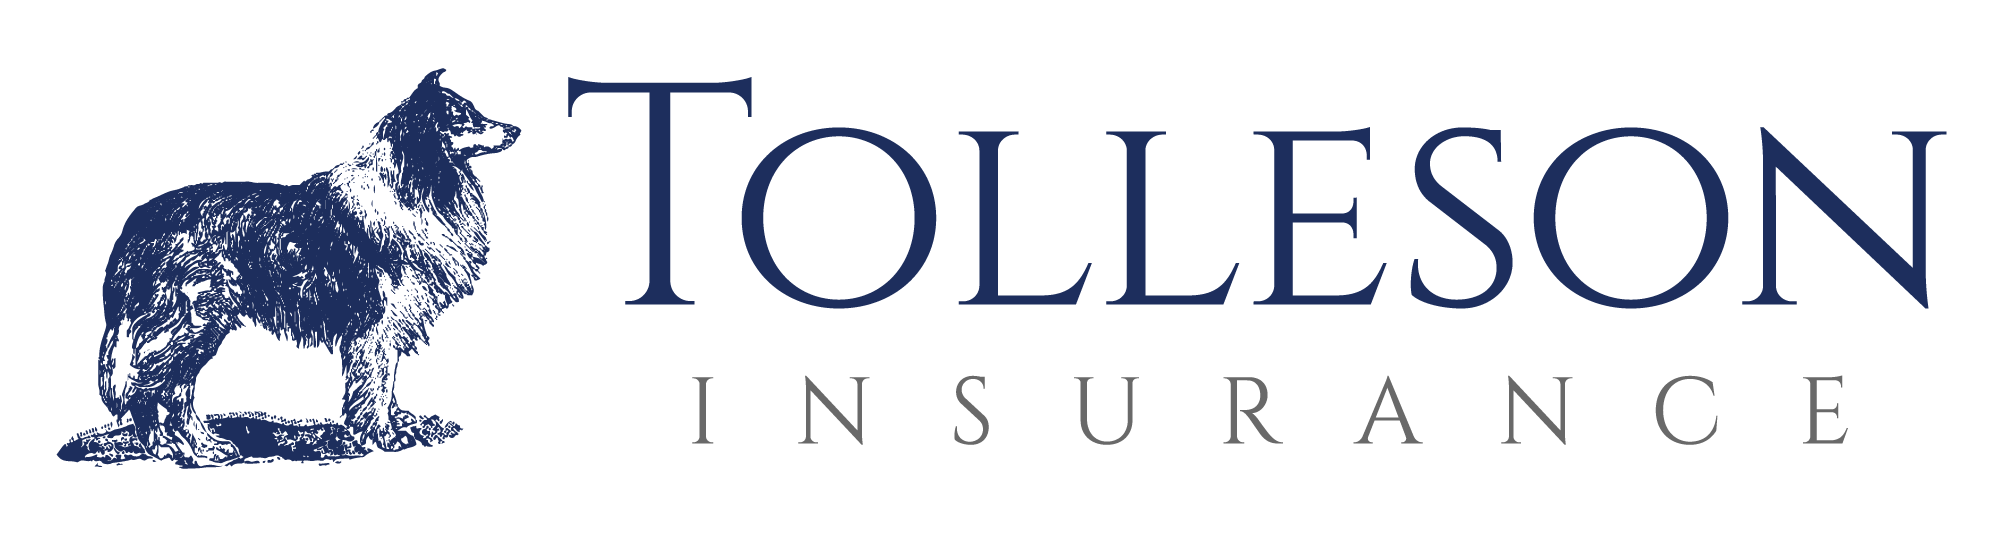 TollesonInsurance_FinalLogo(colorHoriz)